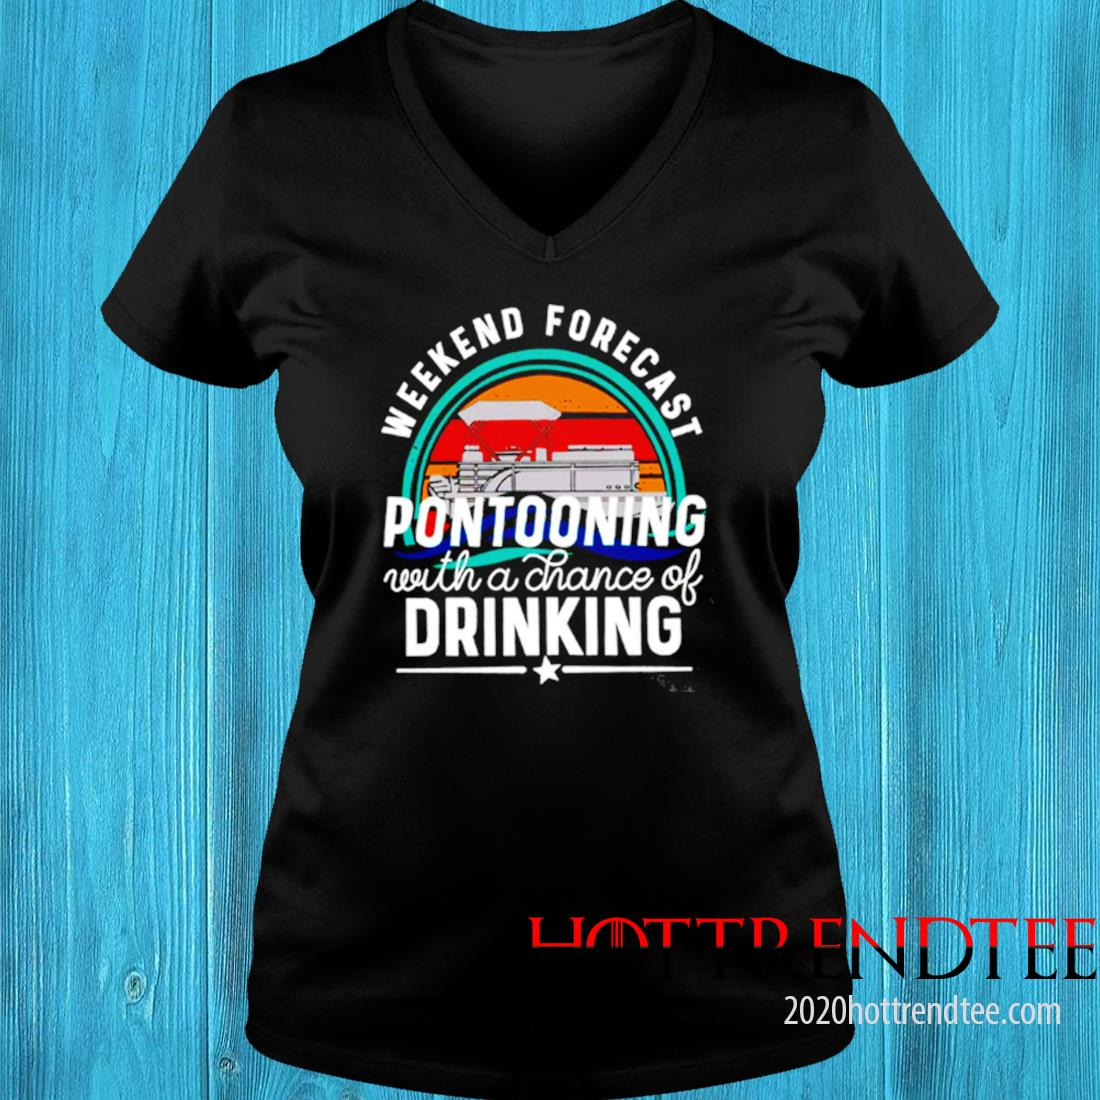 Weekend Forecast Pontooning With A Chance Of Drinking Sunset Shirt v-neck tee